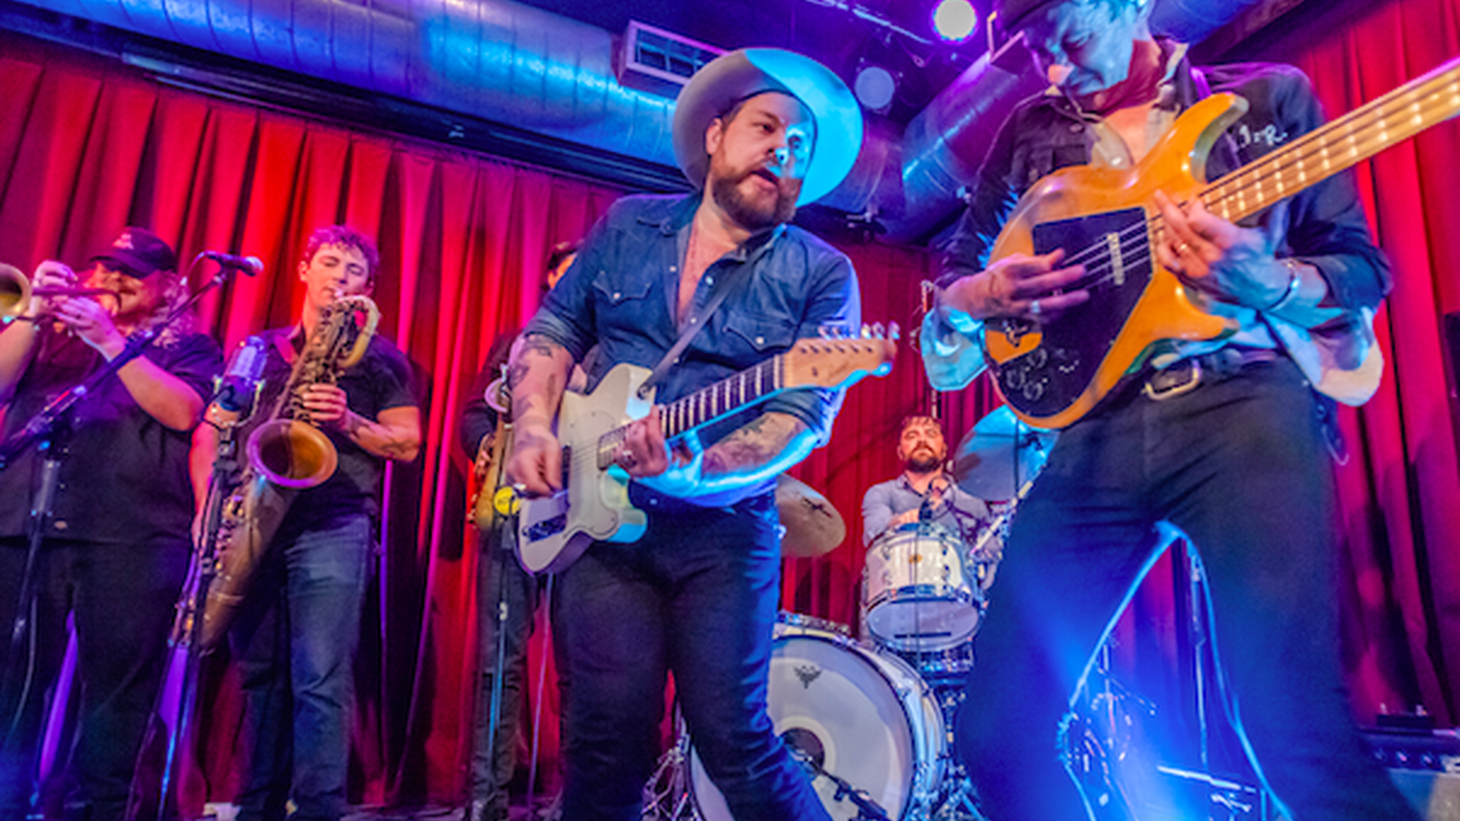 Nathaniel Rateliff and the Night Sweats released their excellent sophomore album Tearing at the Seams earlier this year and have been on the road ever since. Inspired by personal drama, but full of hope, the new songs come alive on stage.